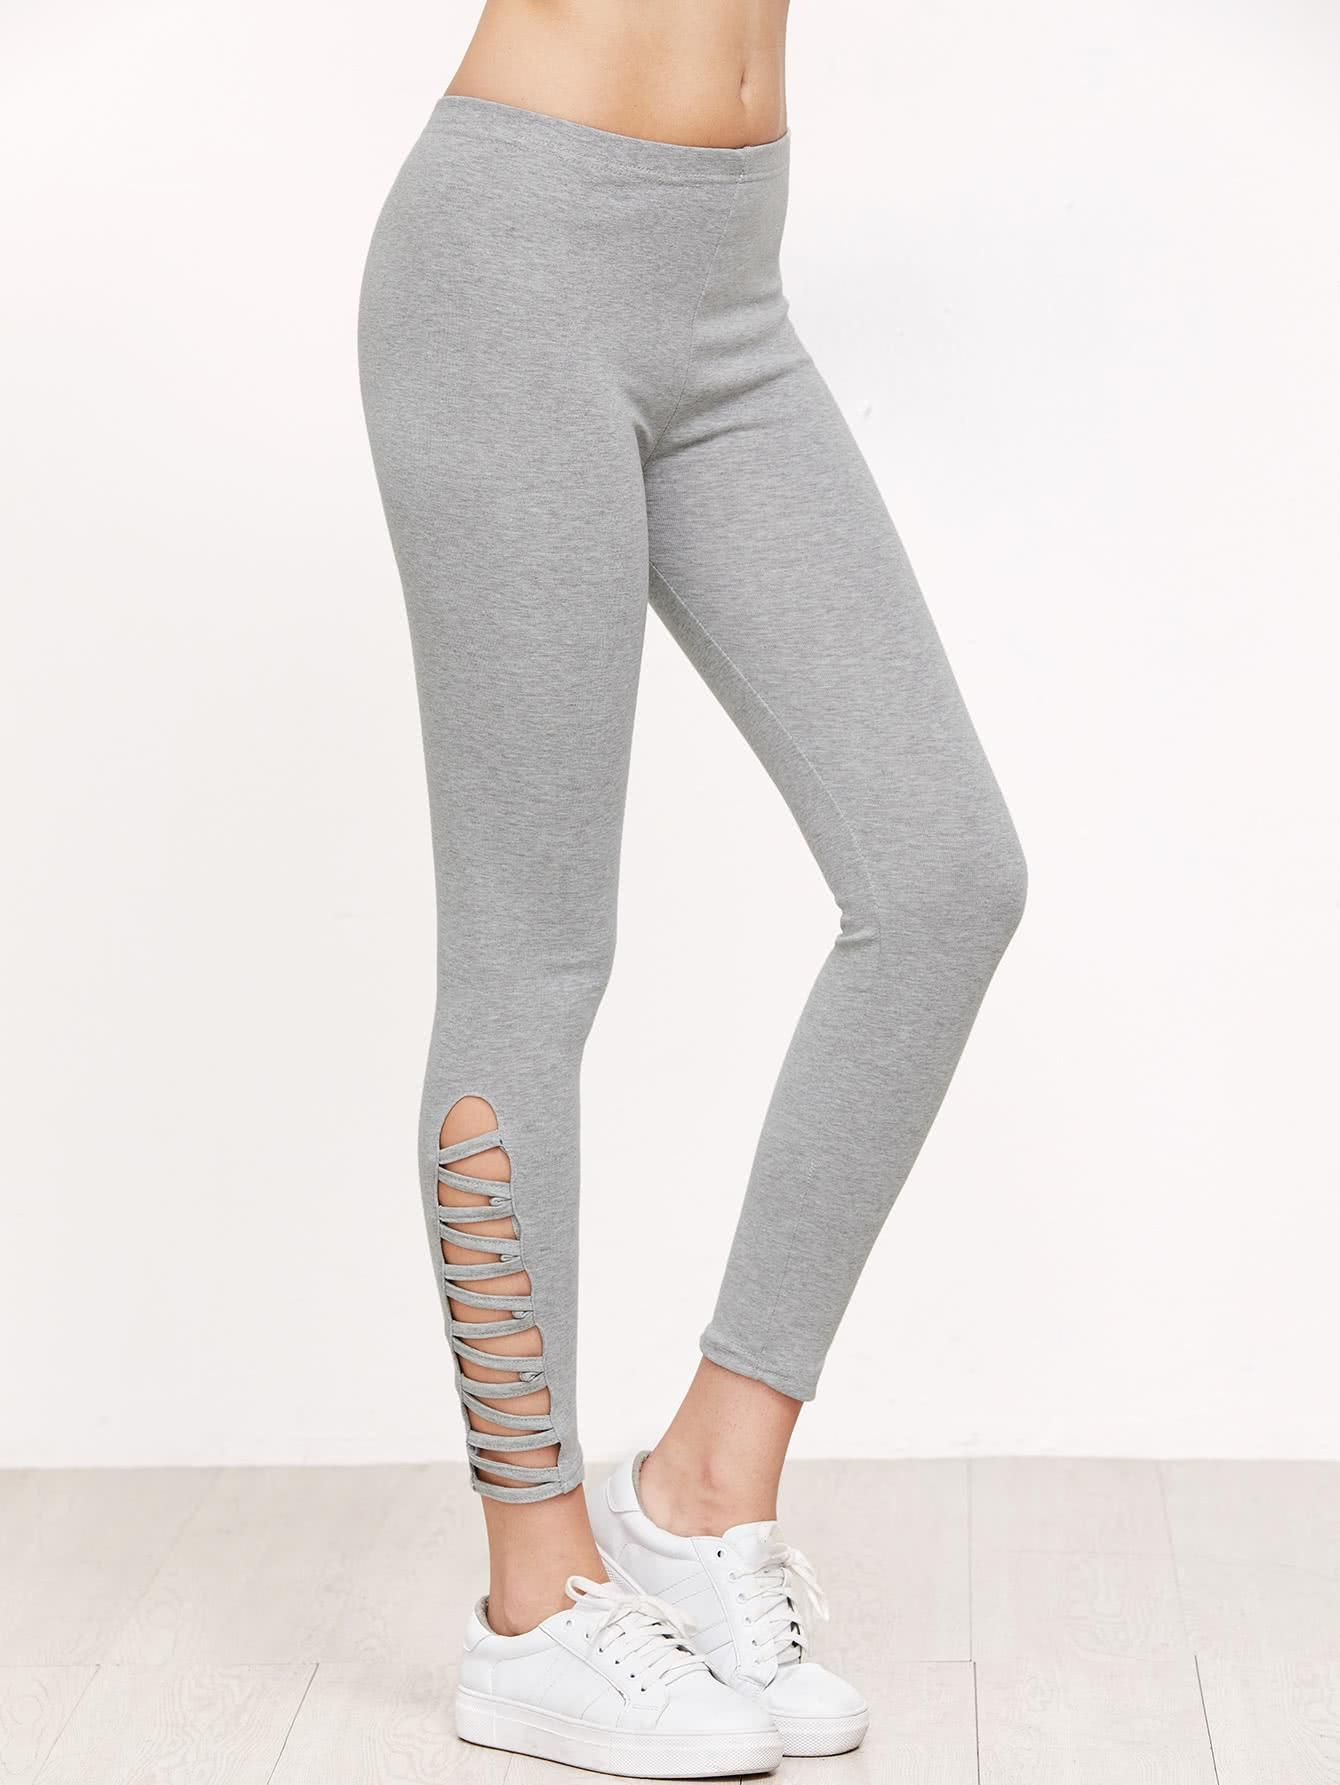 976705e6f6e New Solid Women s Sporting Workout Leggings Sexy Slimming Fitness Leggings  Women Mid Waist Comfortable Quick Dry Female Pants